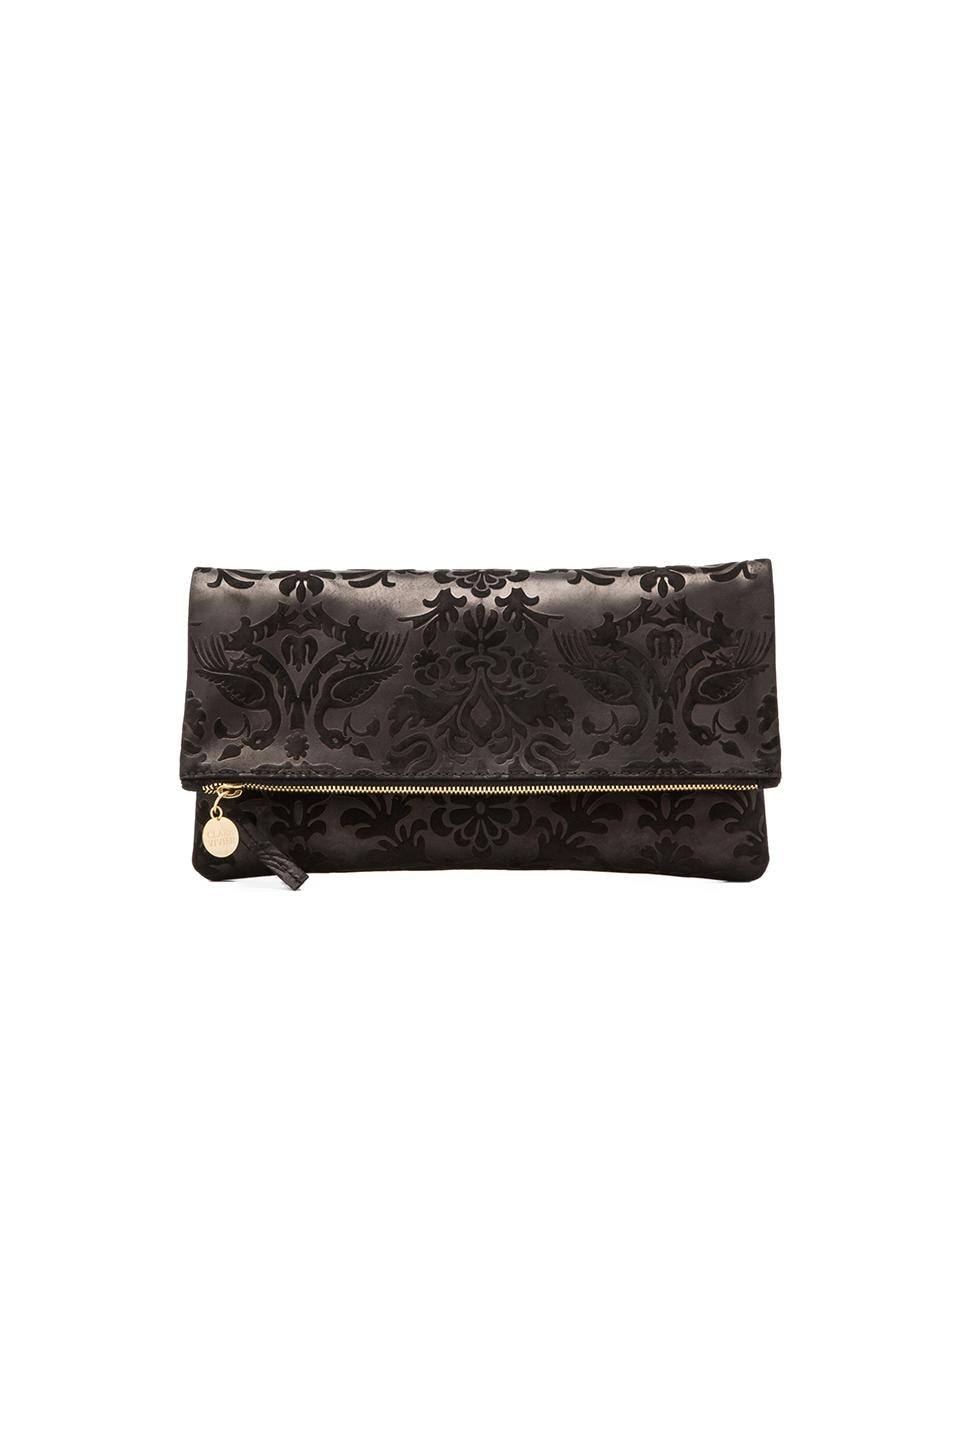 Clare V. Foldover Clutch in Black Brocade